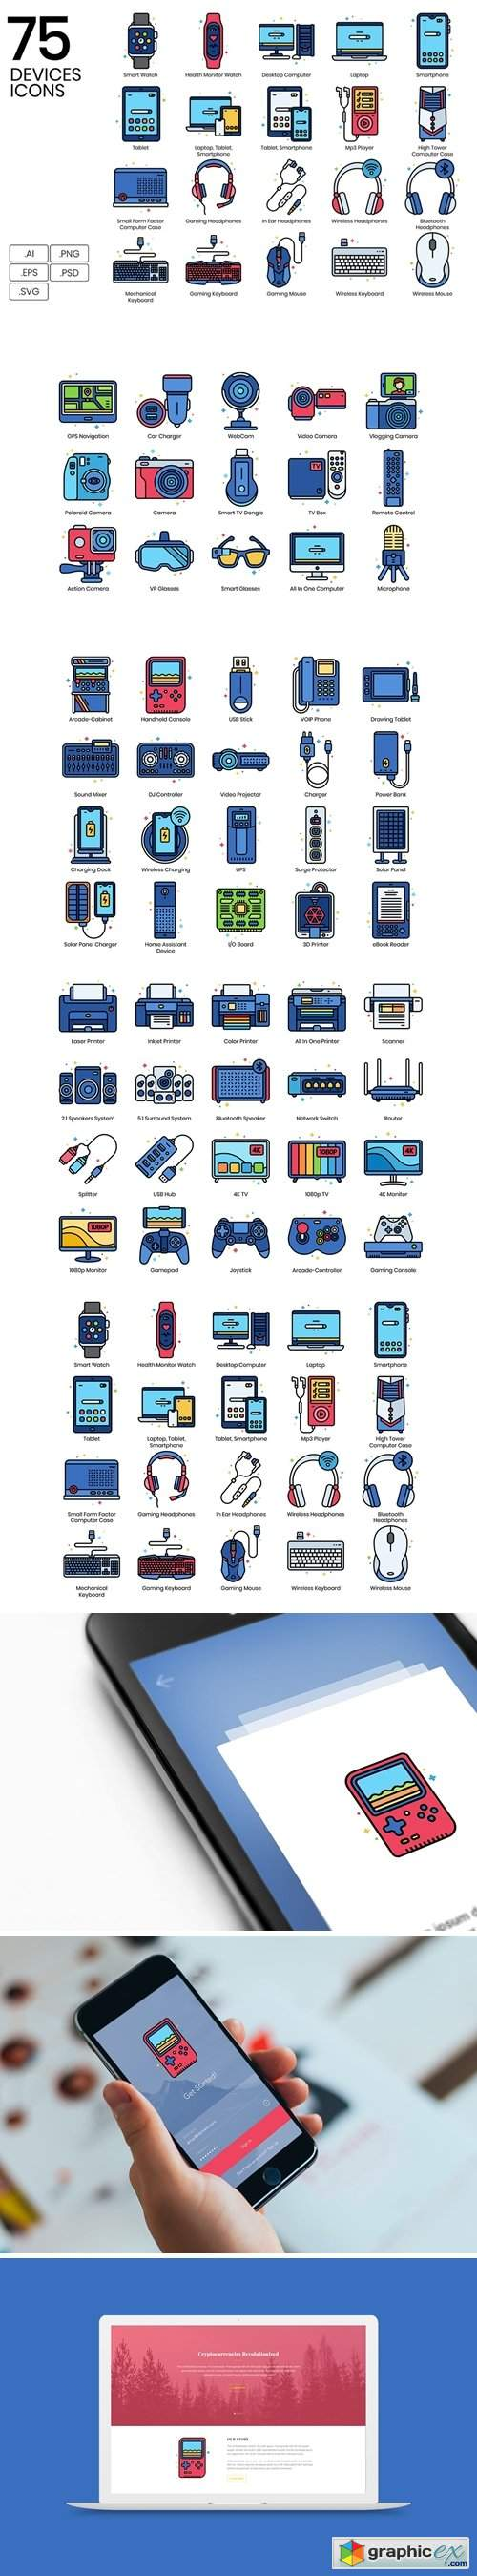 75 Devices Icons | Vivid Series